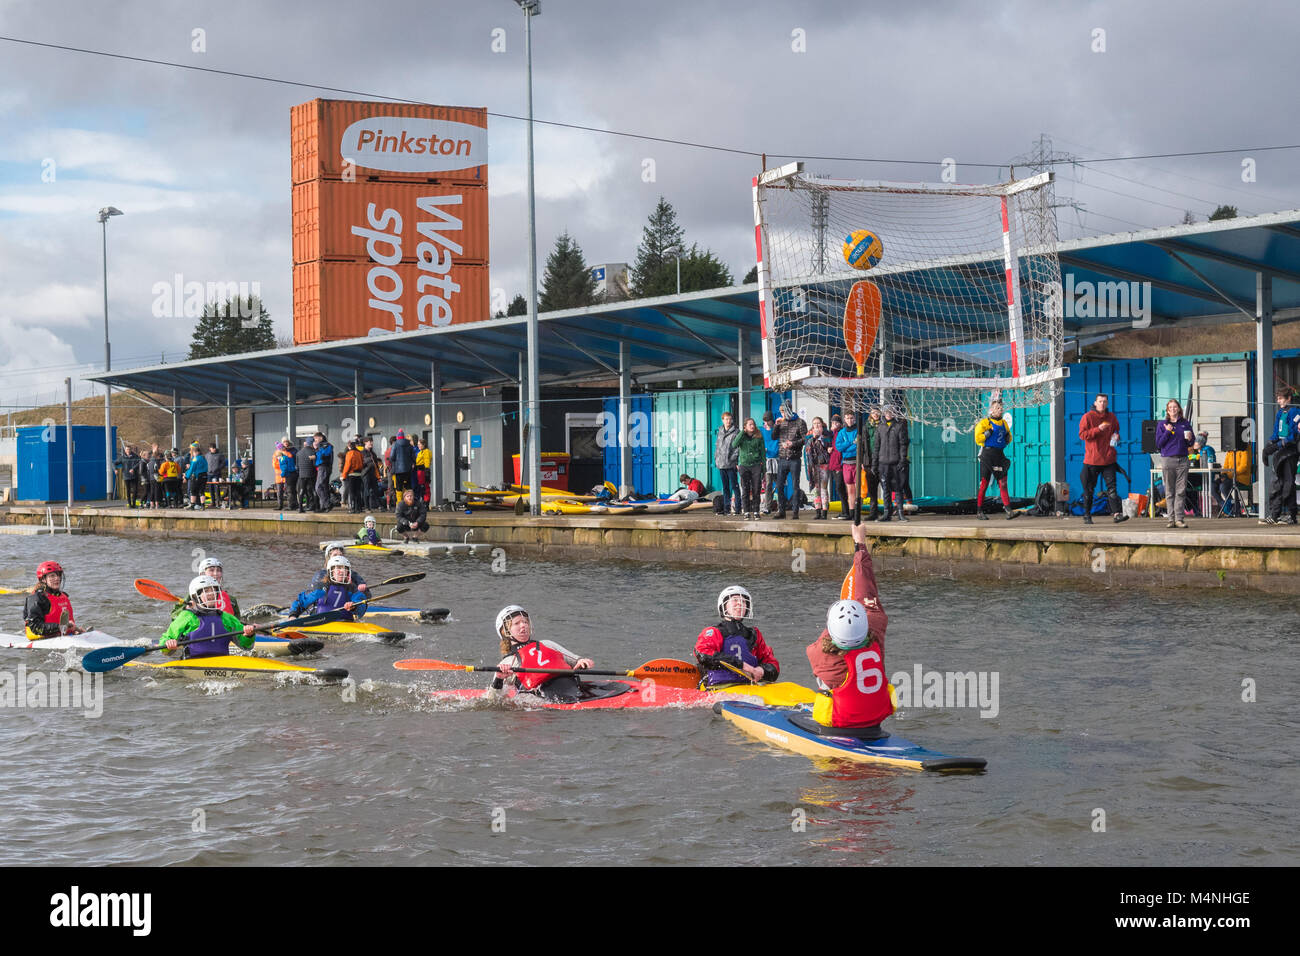 Glasgow, Scotland. 17th Feb, 2018. uk weather - freezing cold water on a grey day in Glasgow doesn't deter competitors - Stock Image